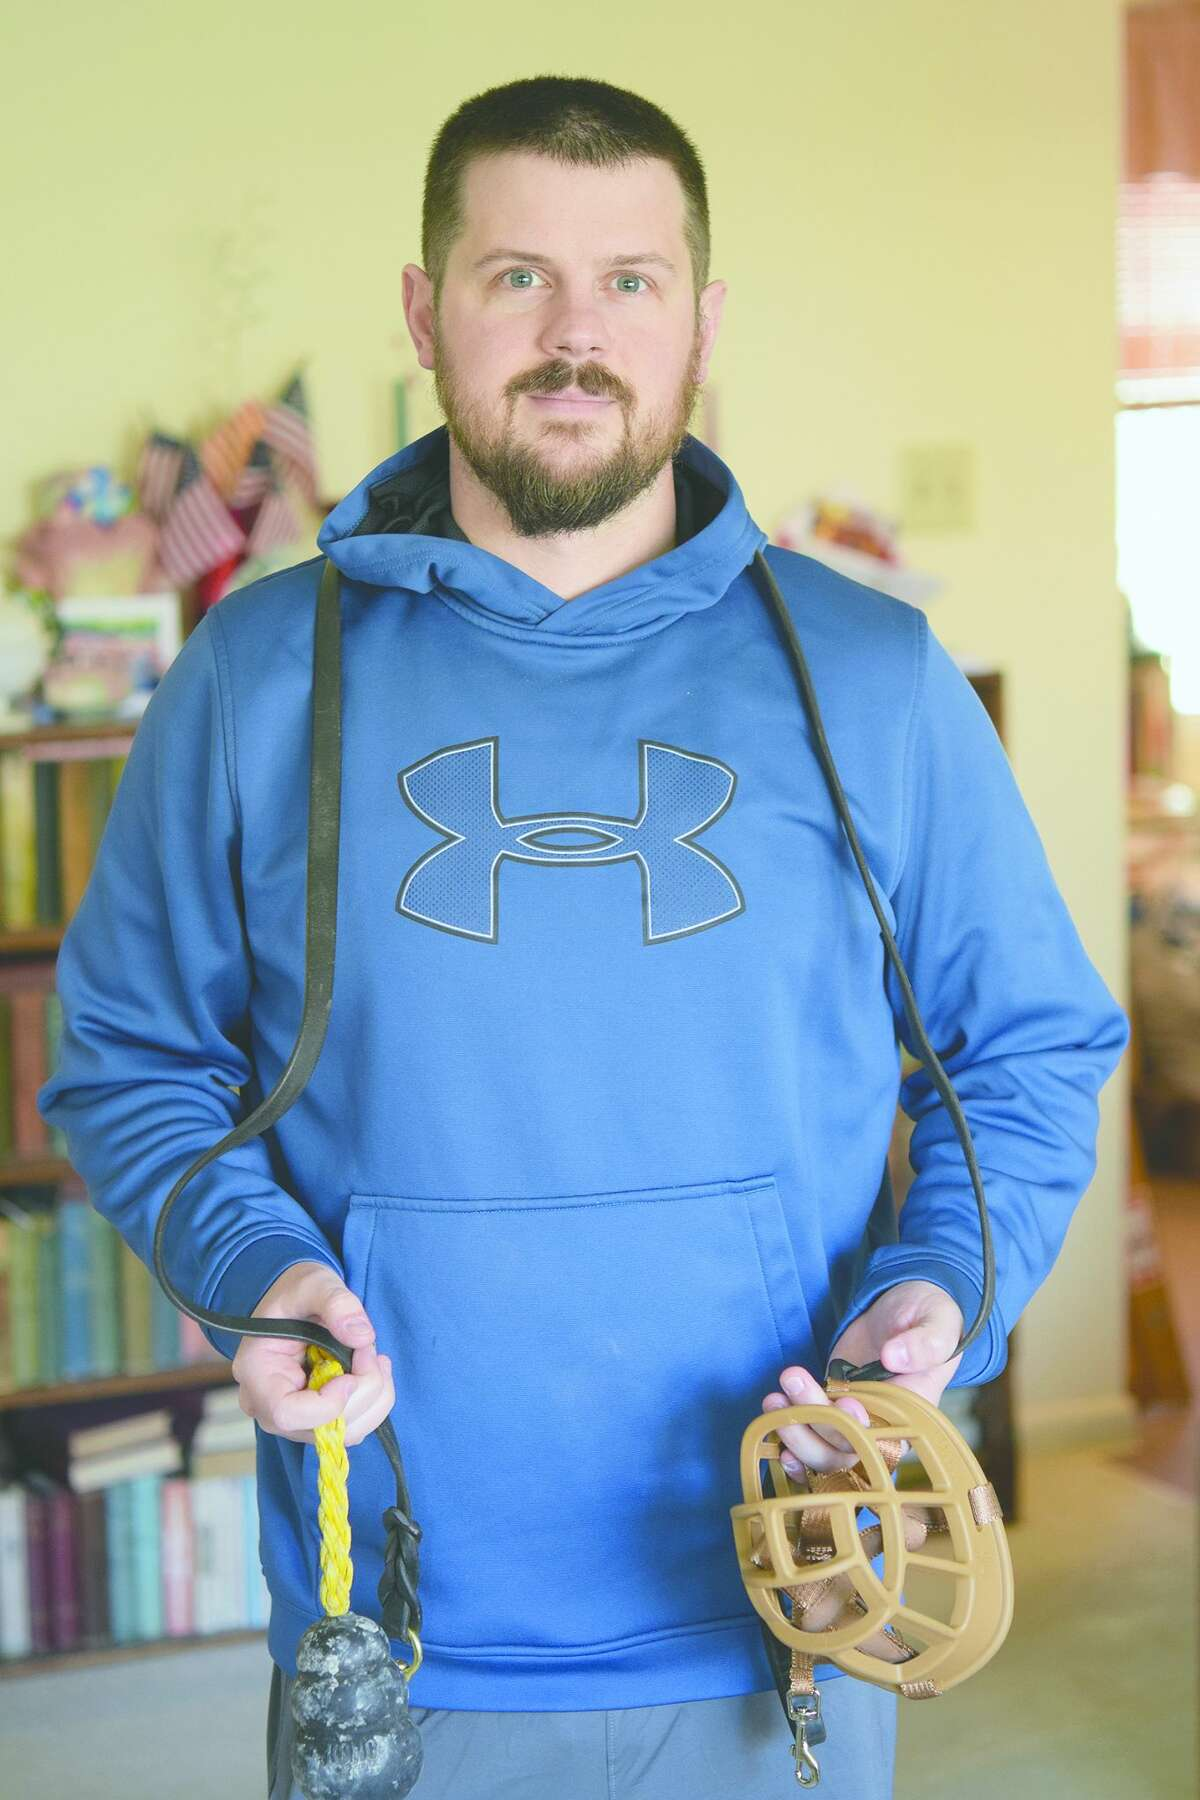 Billy Hollendonner, in the living room of his parents' home in Jacksonville, displays his dog handler tools of the trade.